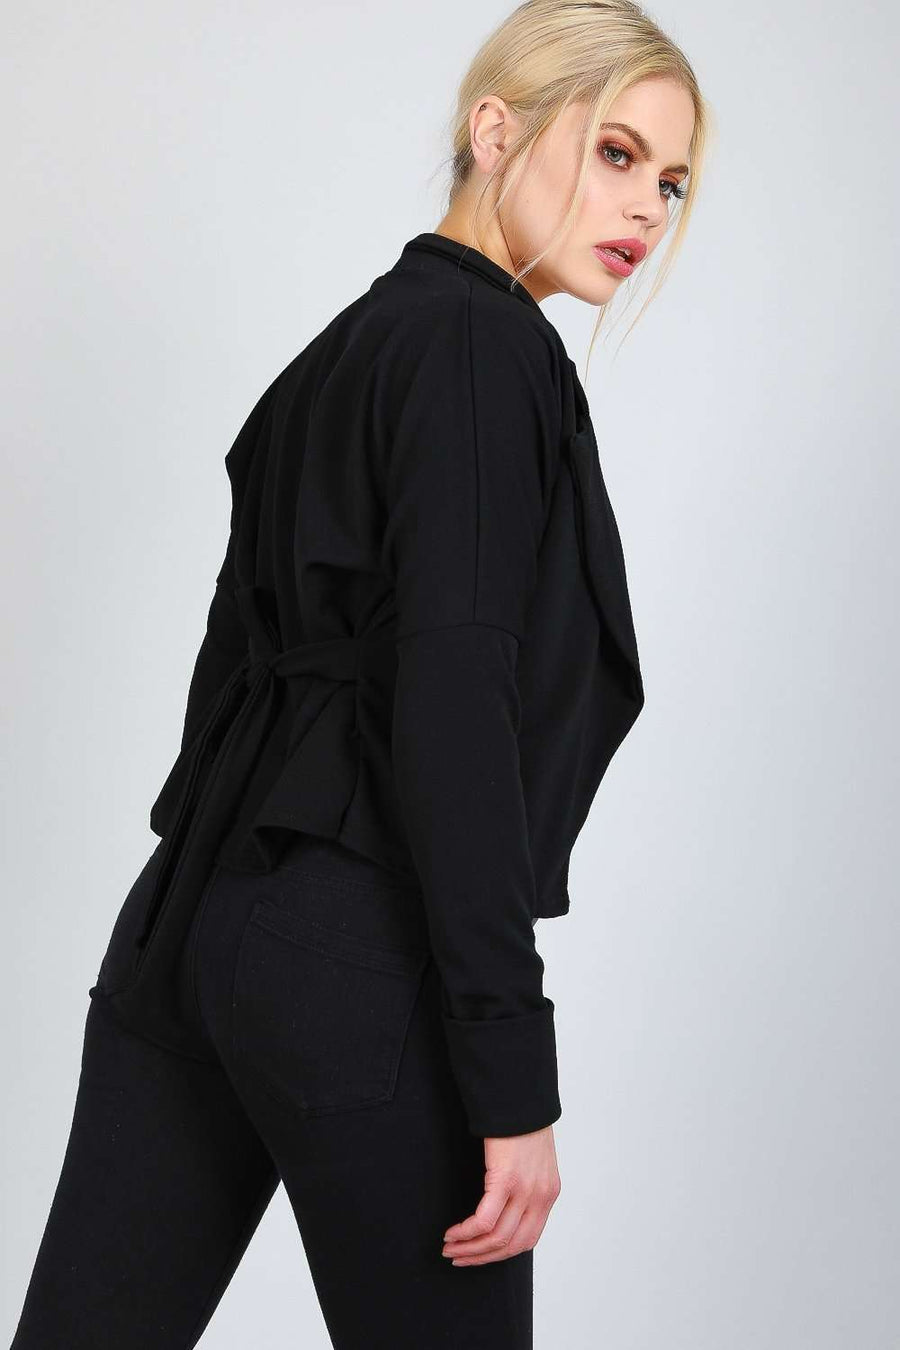 Cheslie Long Sleeve Cropped Belted Jacket - bejealous-com